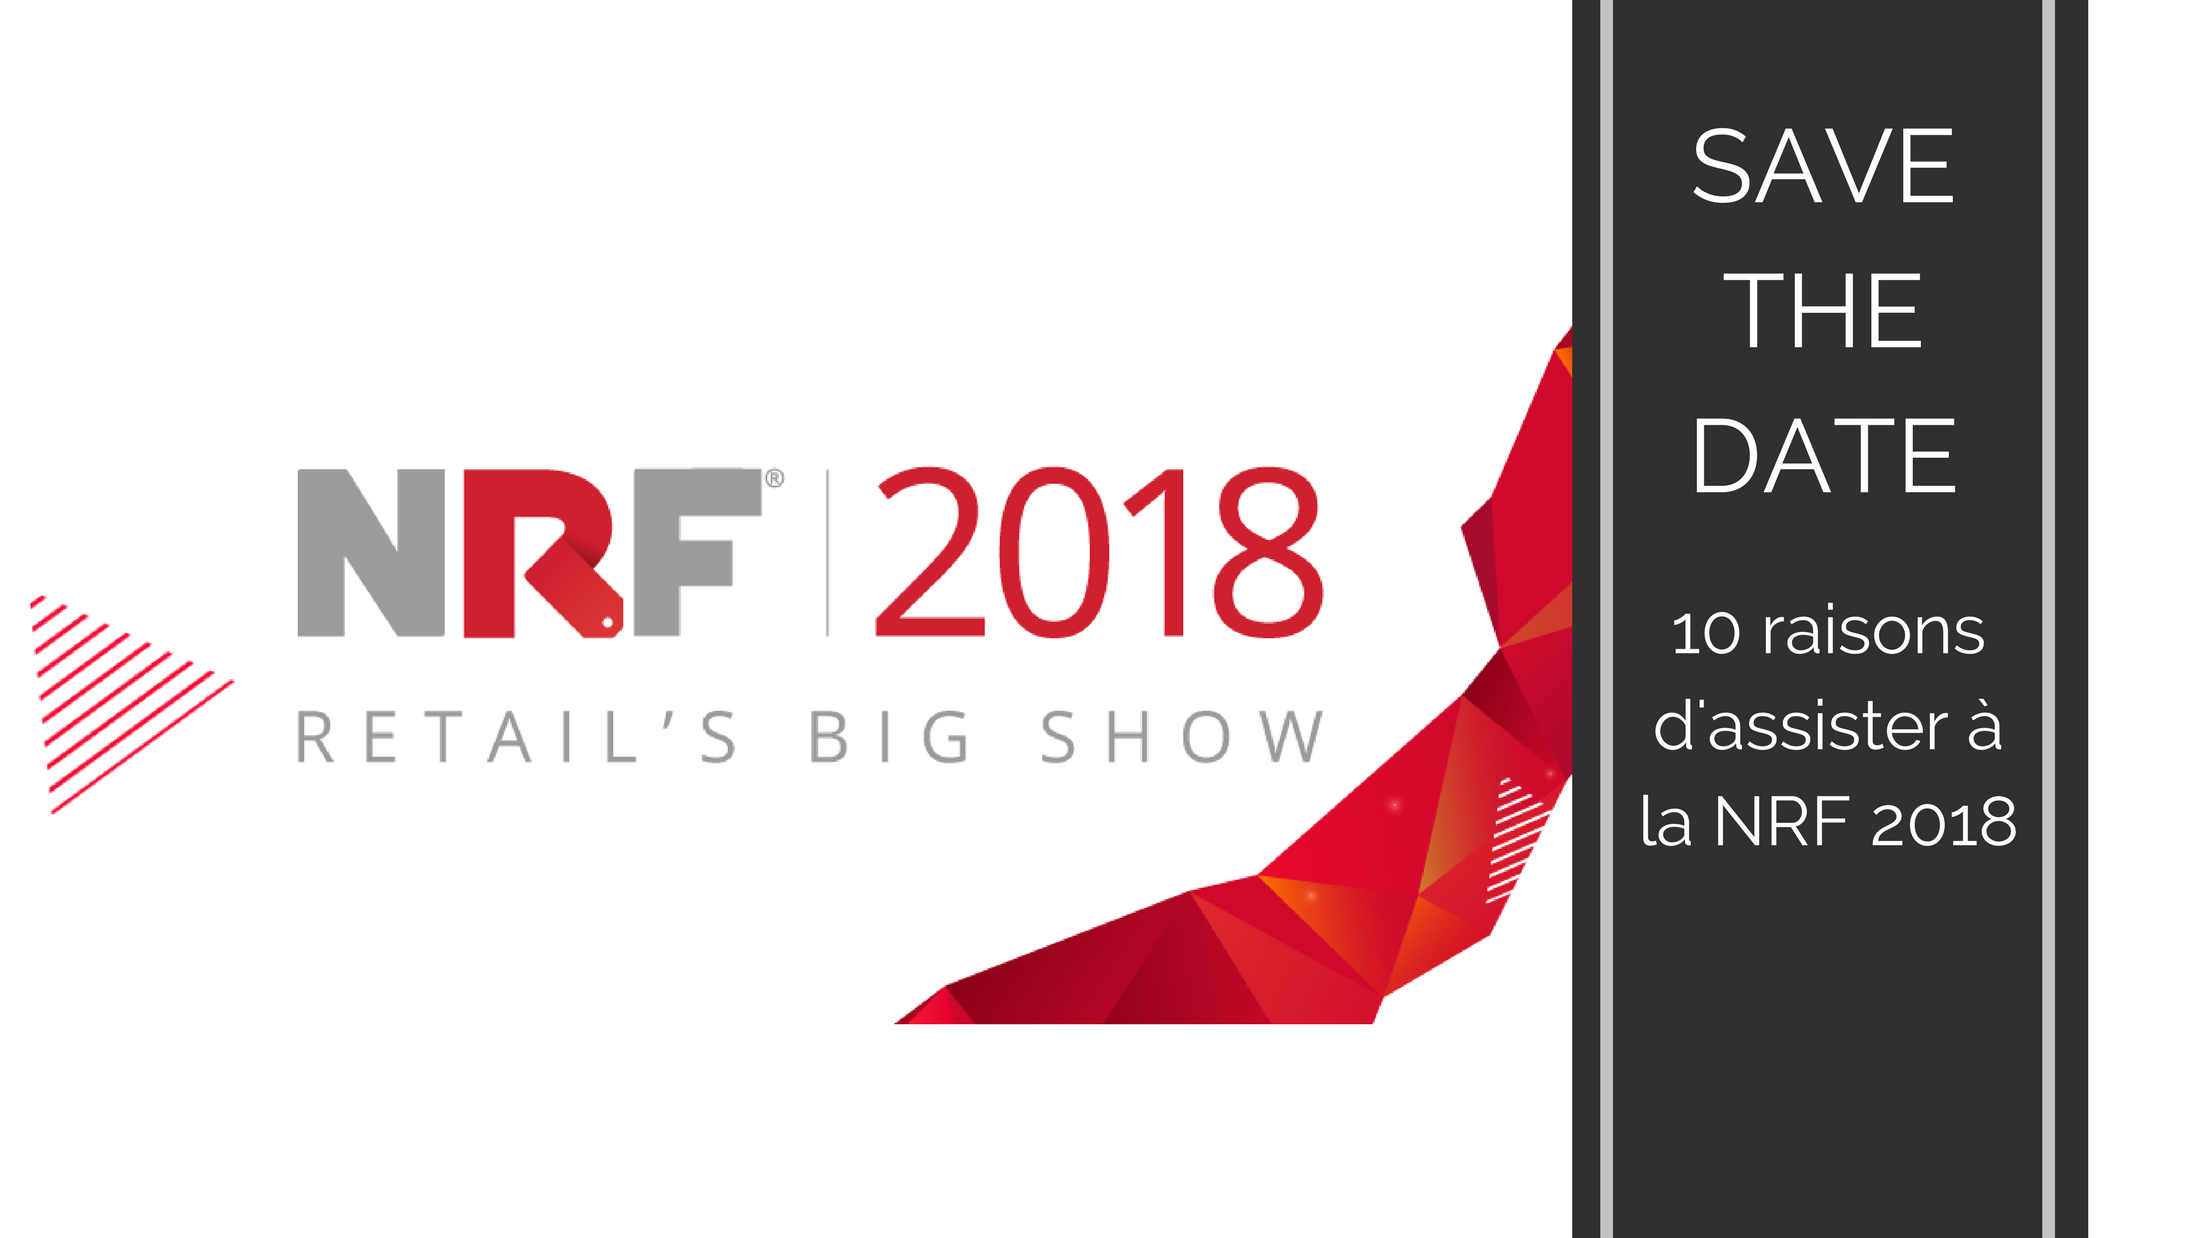 Trends News suite - 10 raisons de participer à la NRF 2018 (14-16 jan.) avec B.D.C.